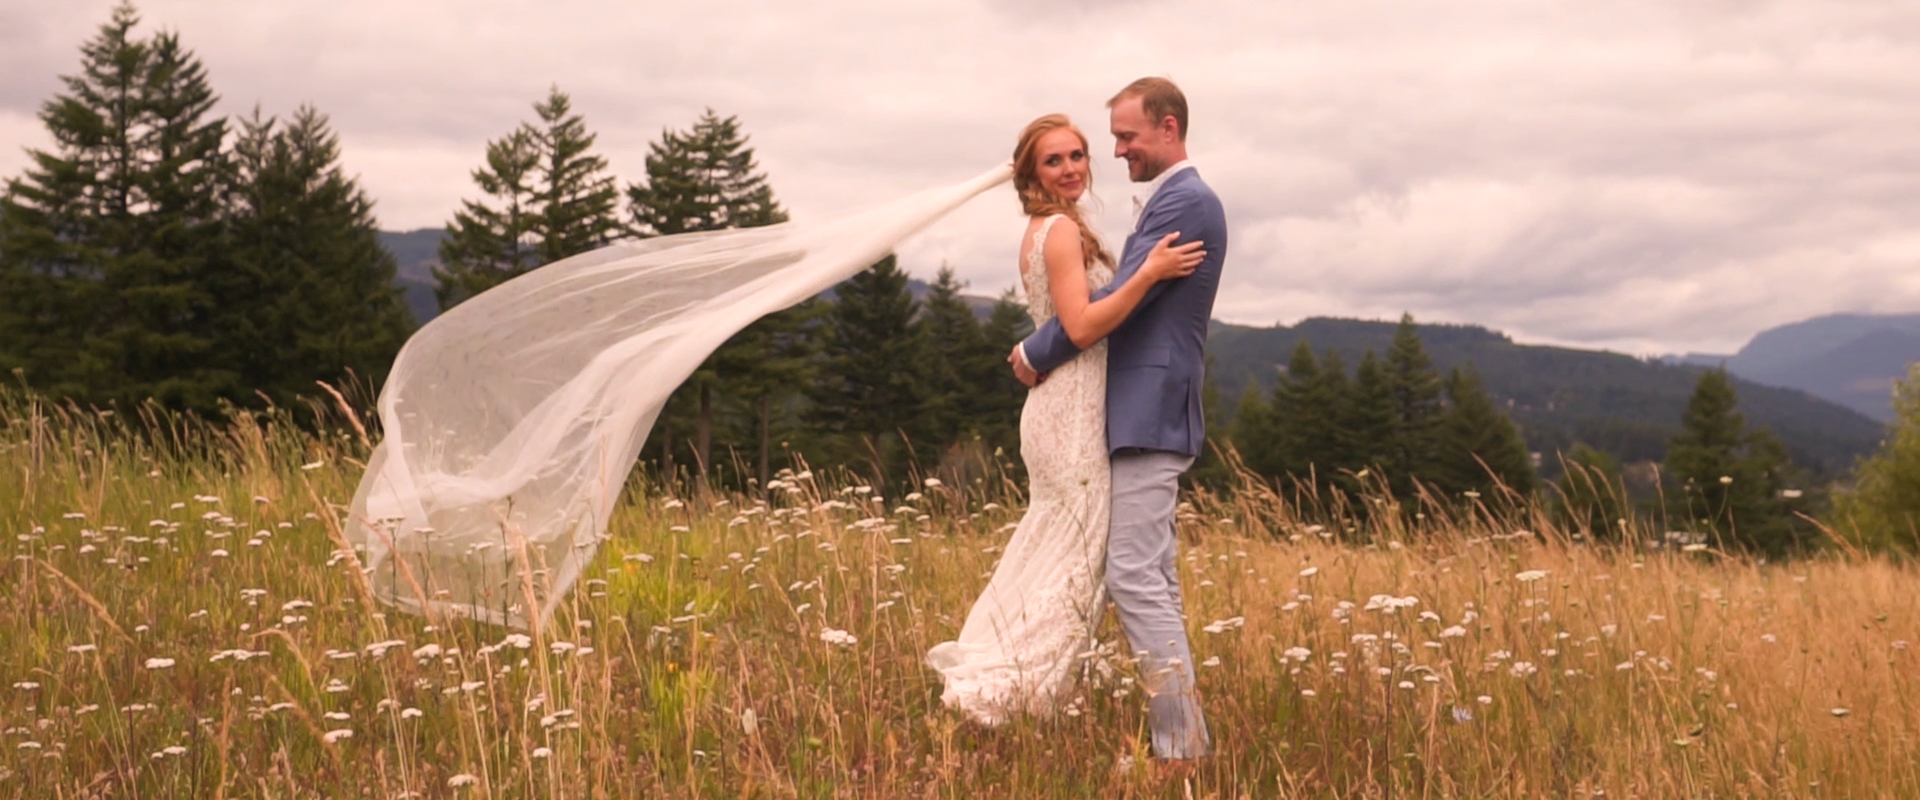 Merran + Jeff | Stevenson, Washington | Skamania Lodge